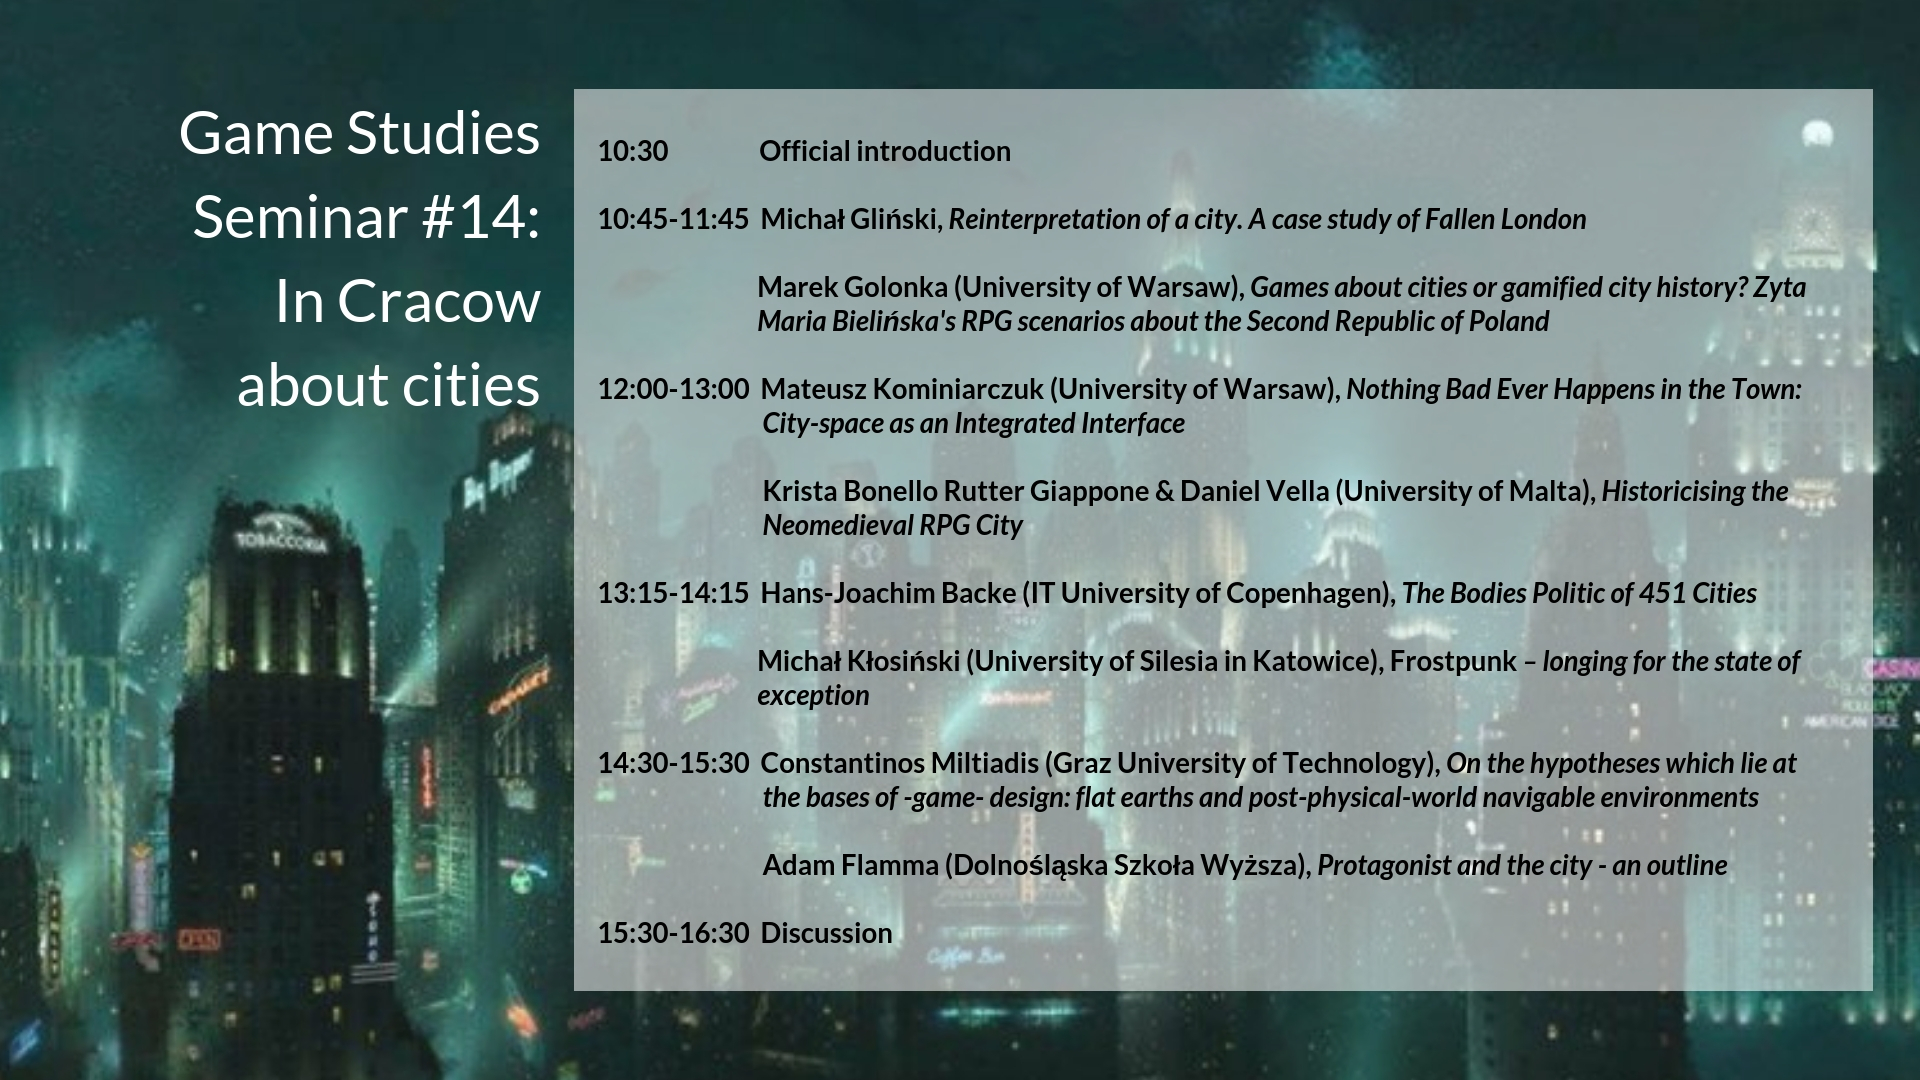 Presentation at Game Studies Seminar #14:In Cracow about cities, Jagiellonian University